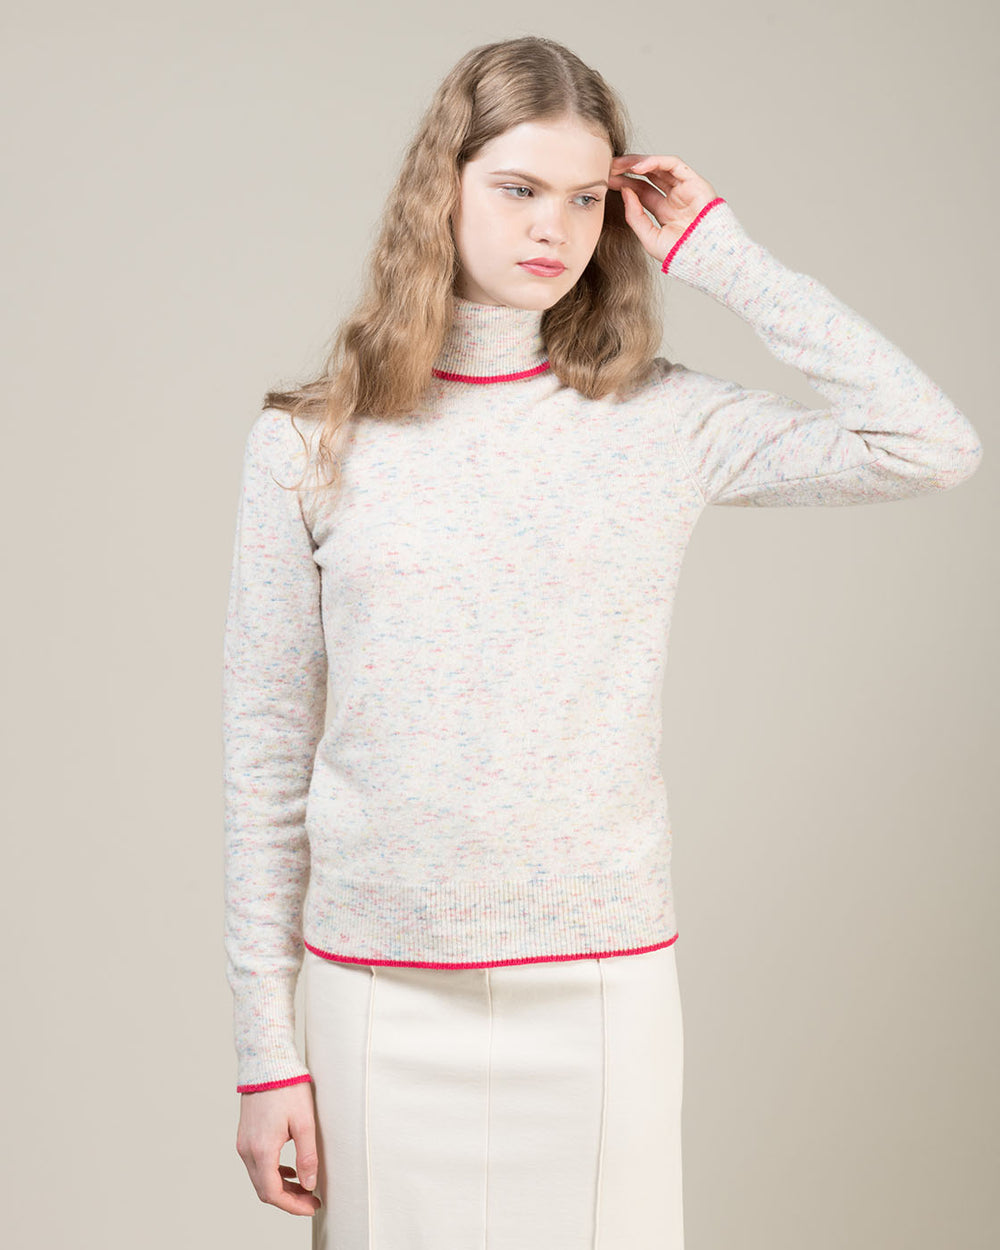 White Melange Turtleneck Sweater with Contrast Edging